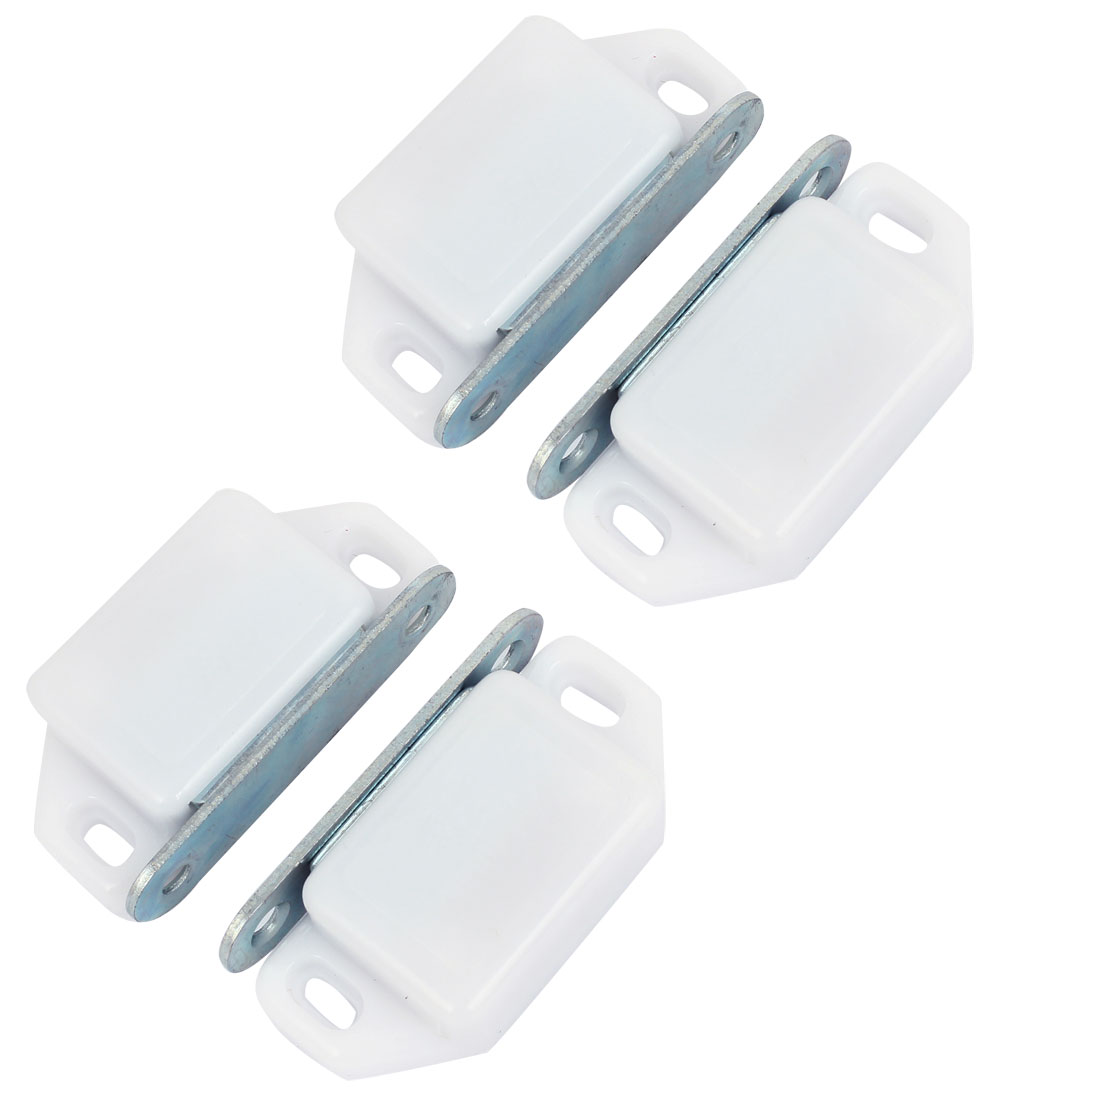 4 Pcs White Plastic Shell Metal Plate Cupboard Door Magnetic Catch 2.2""